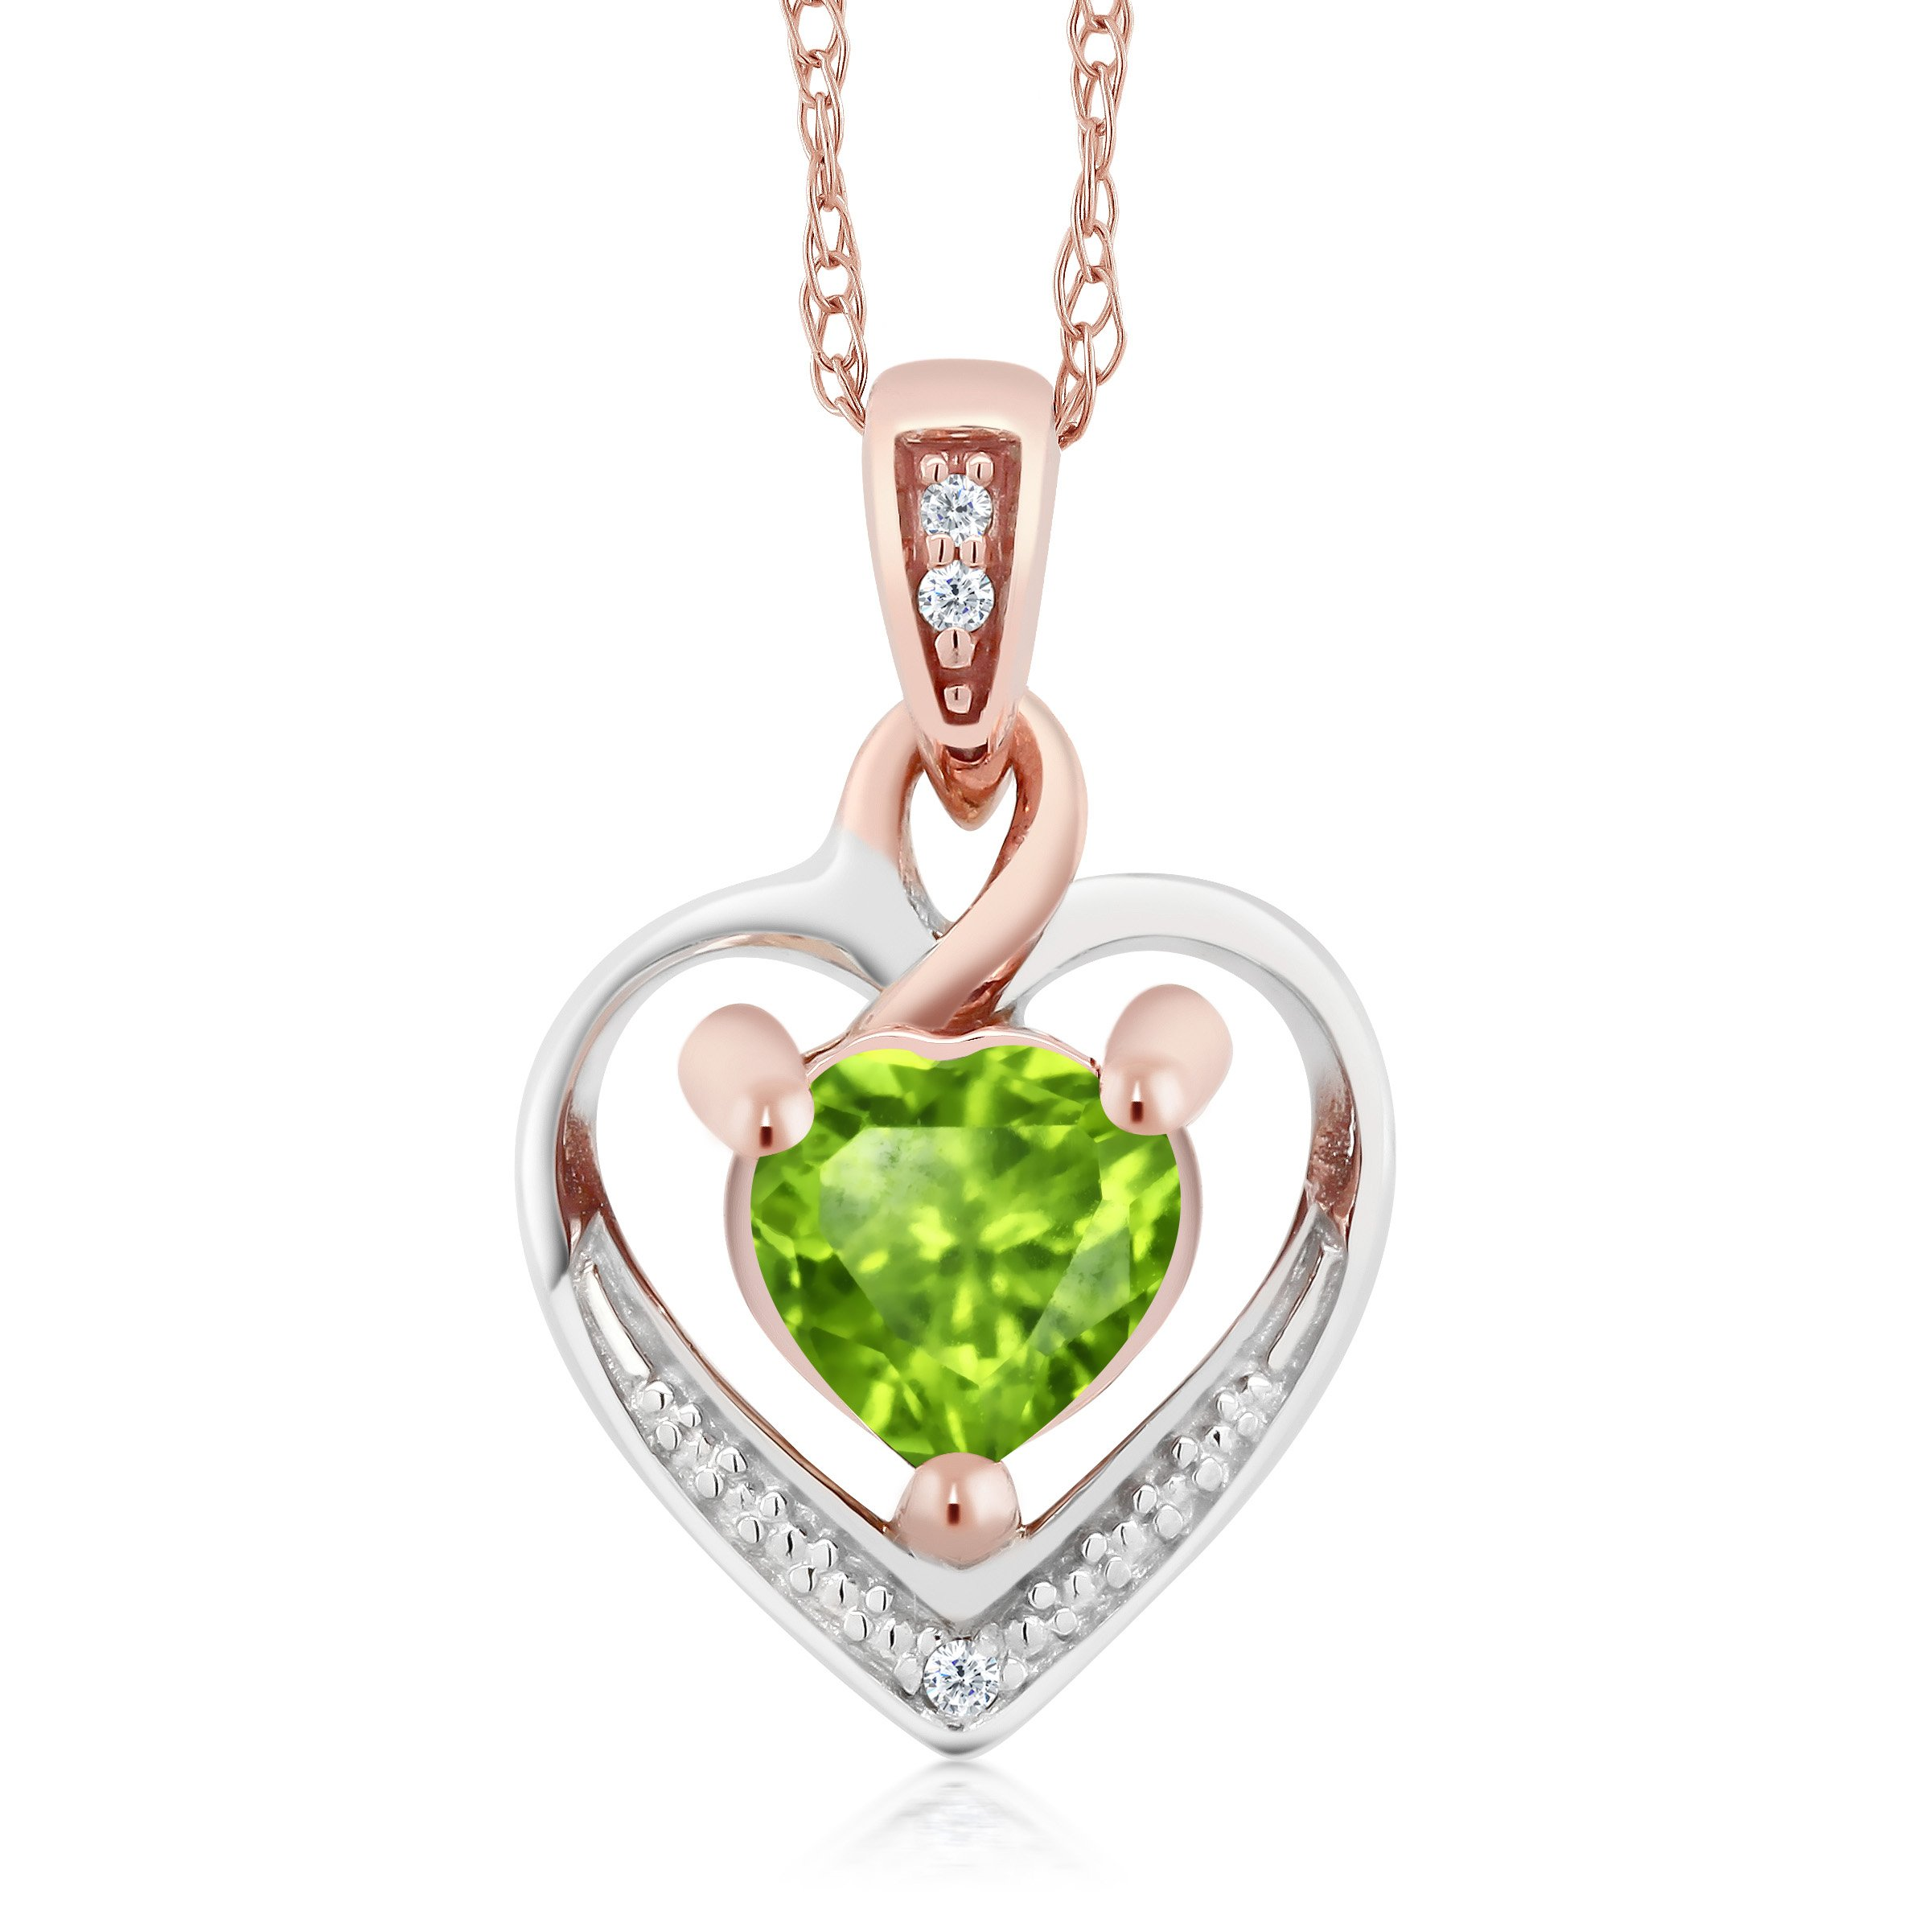 10K White Gold Heart Shape Green Peridot and Diamond Pendant Earrings Set by Gem Stone King (Image #2)